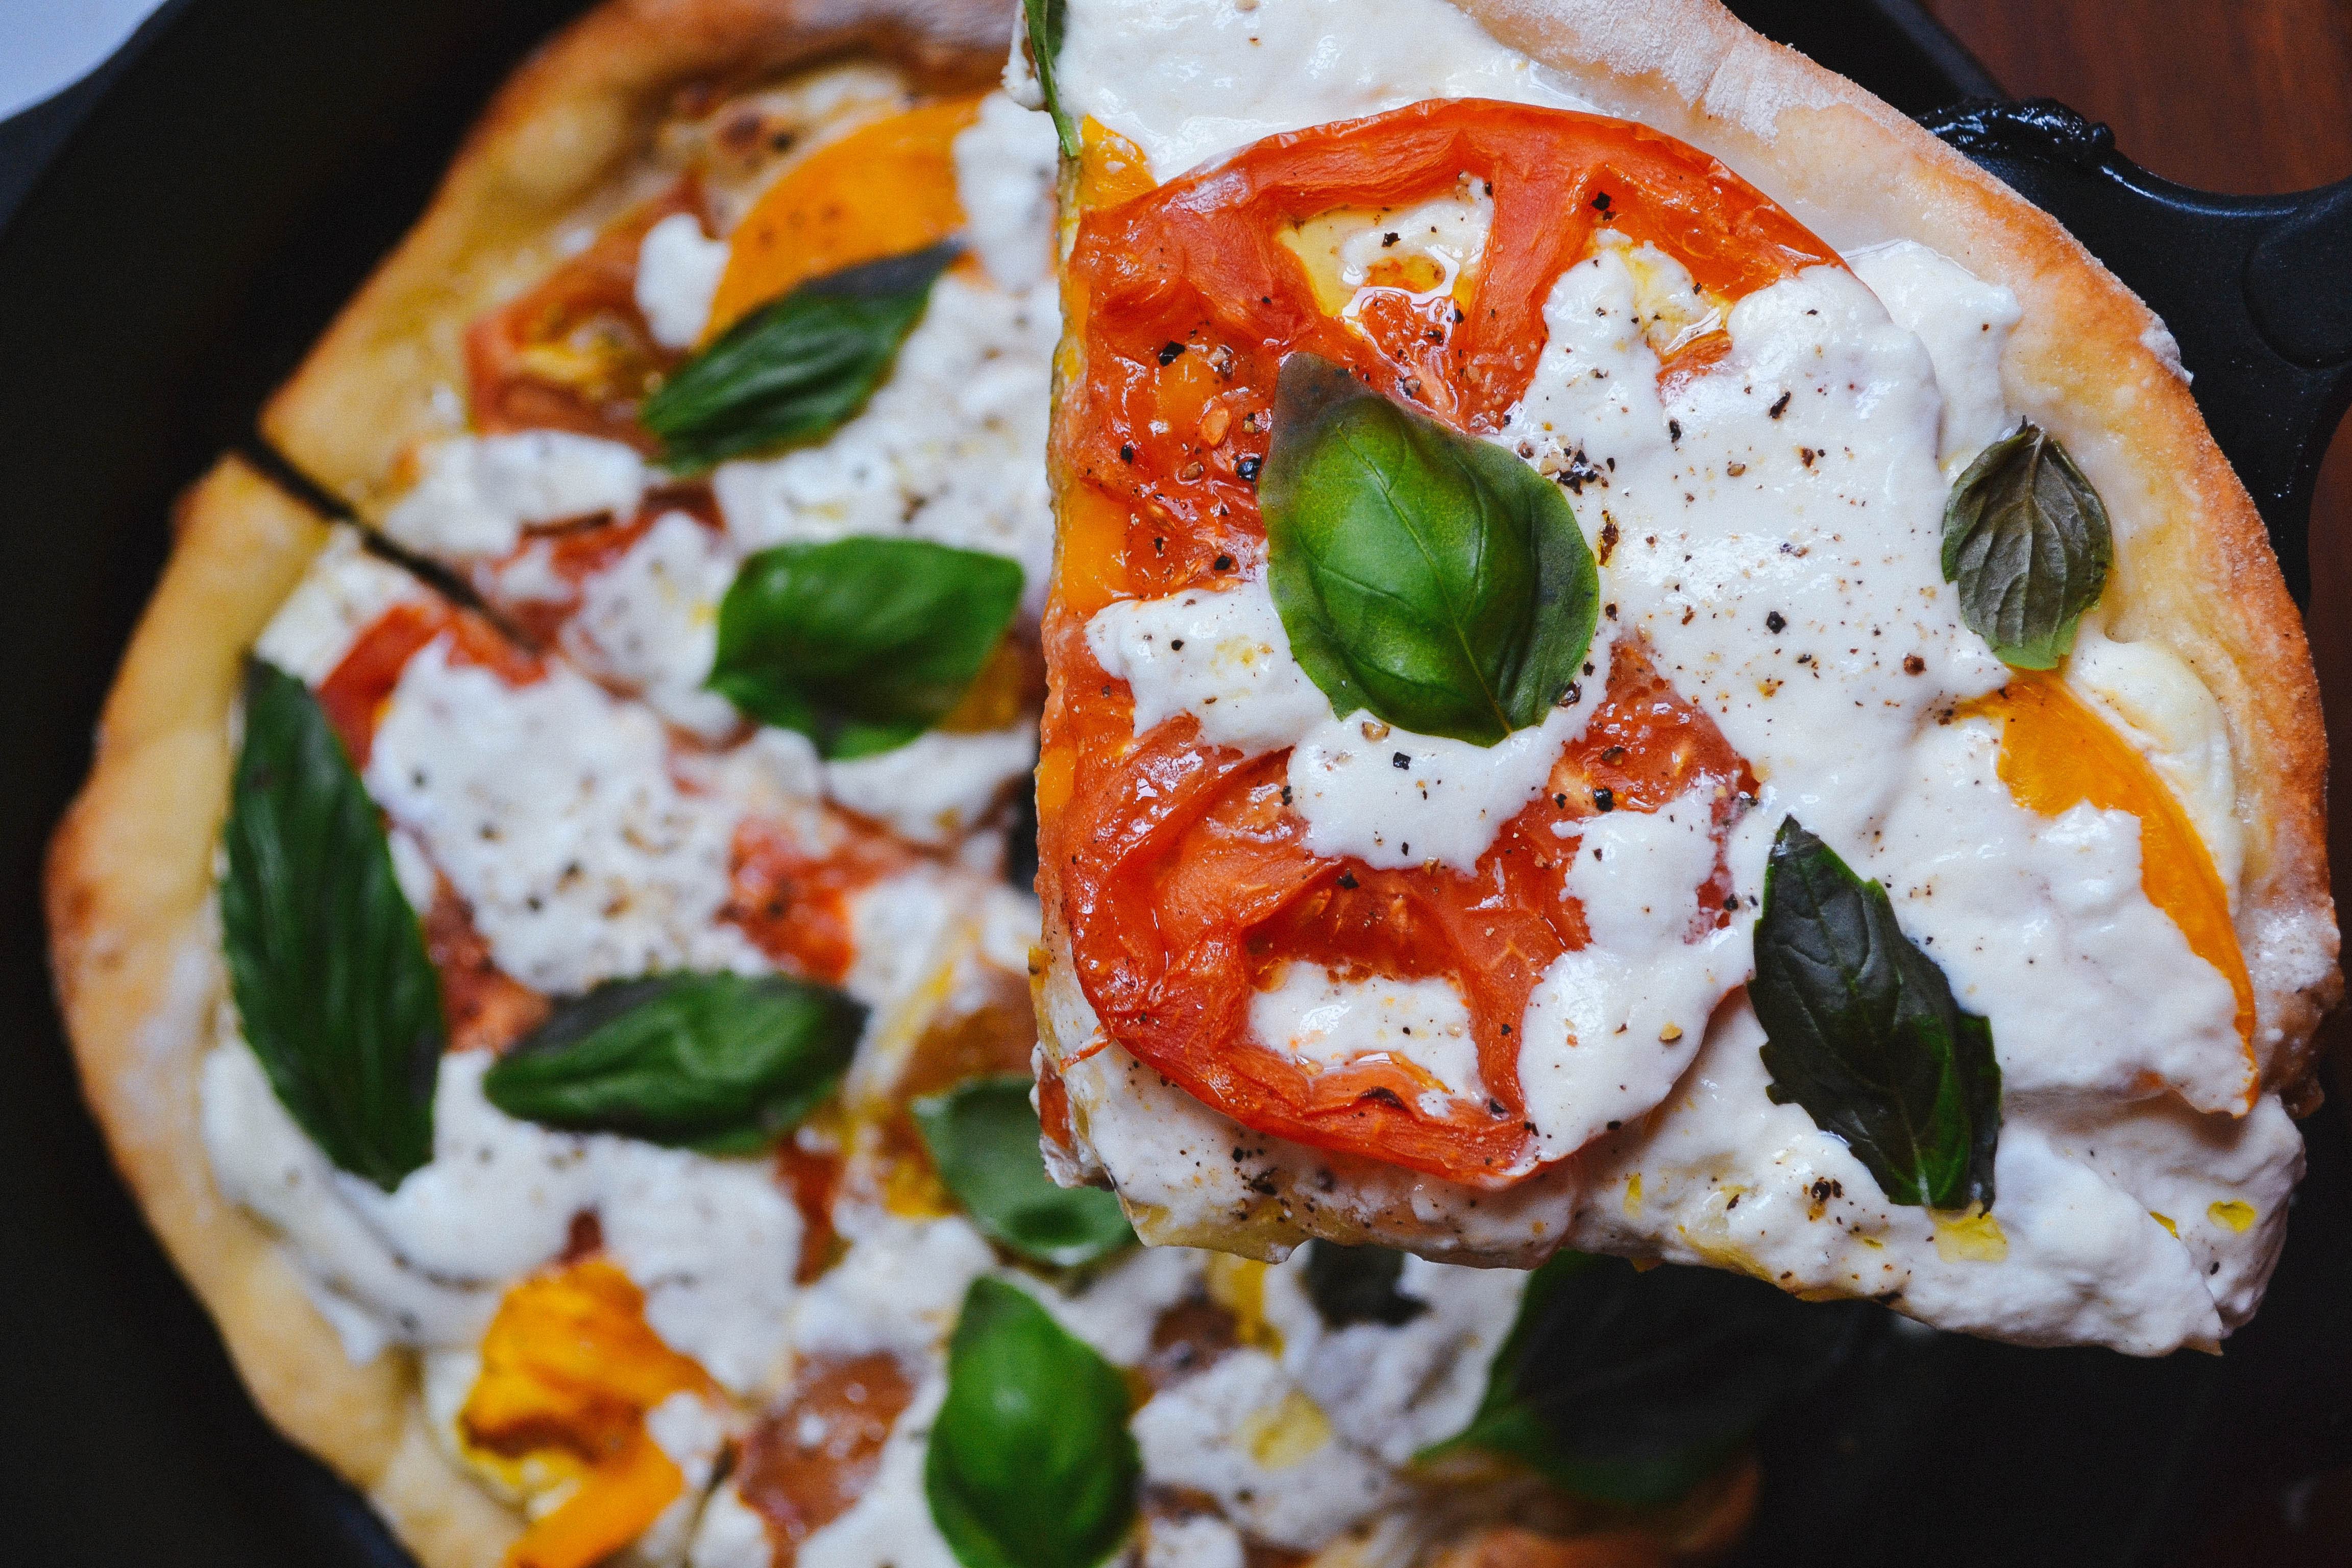 Heirloom & Burrata Cast-Iron Pizza